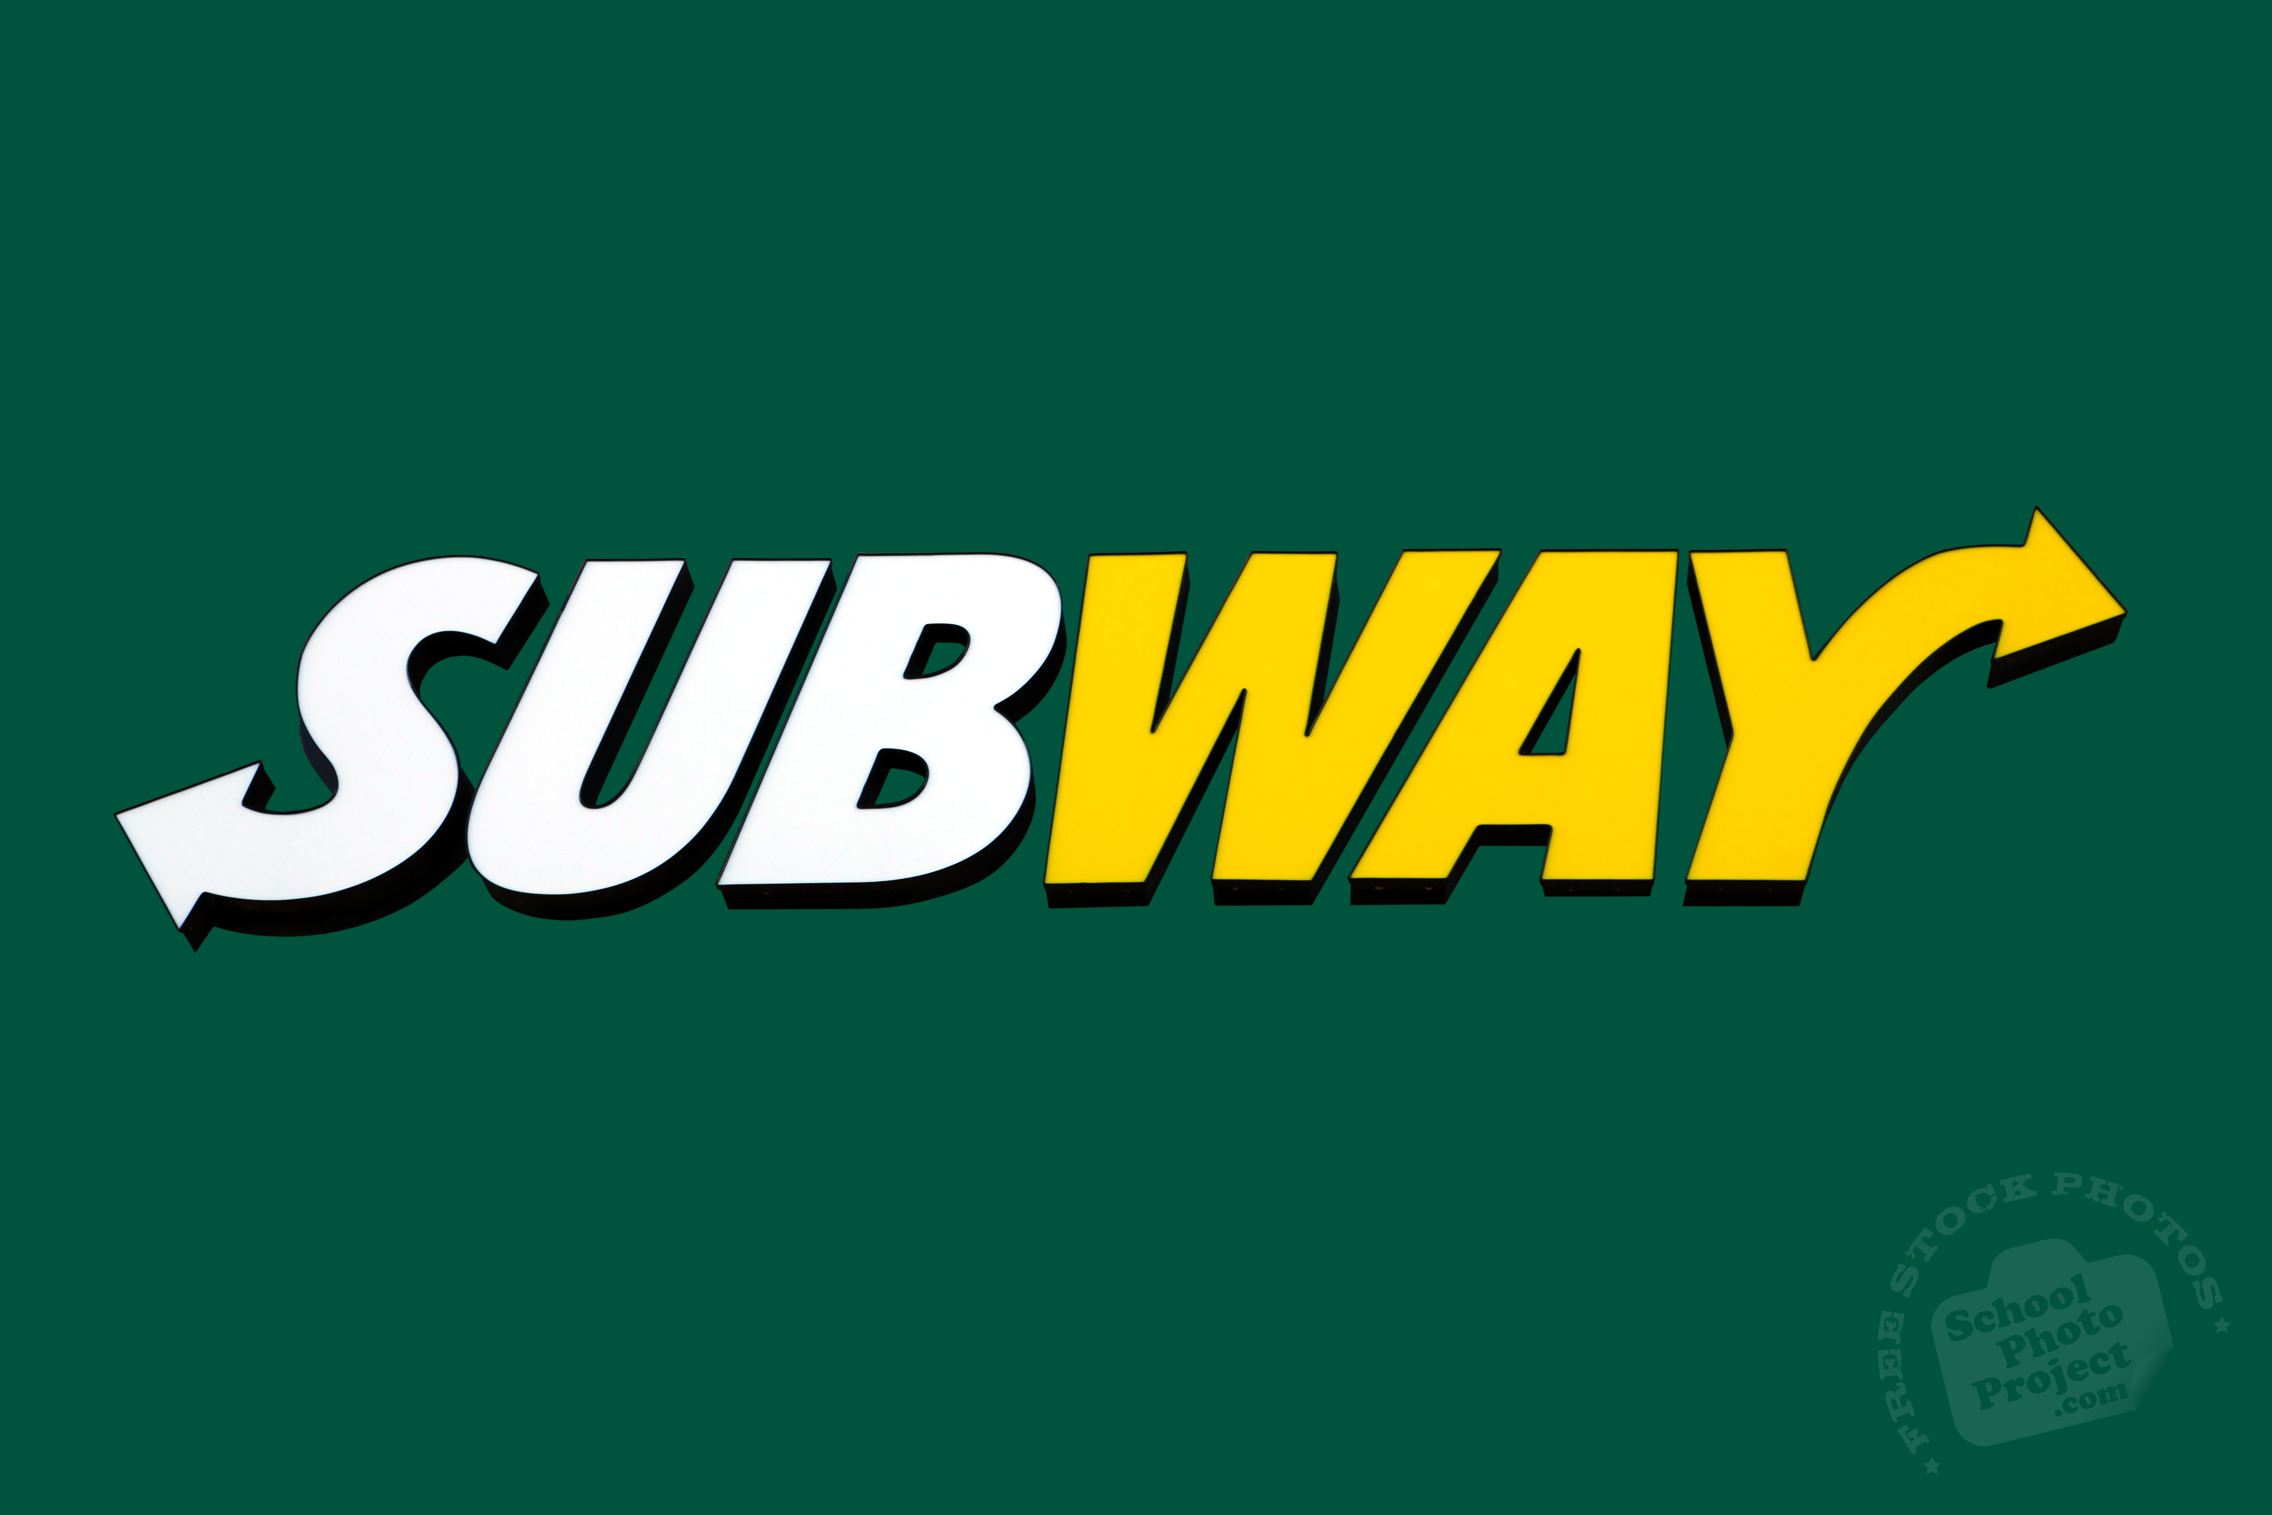 Subway for your workday!